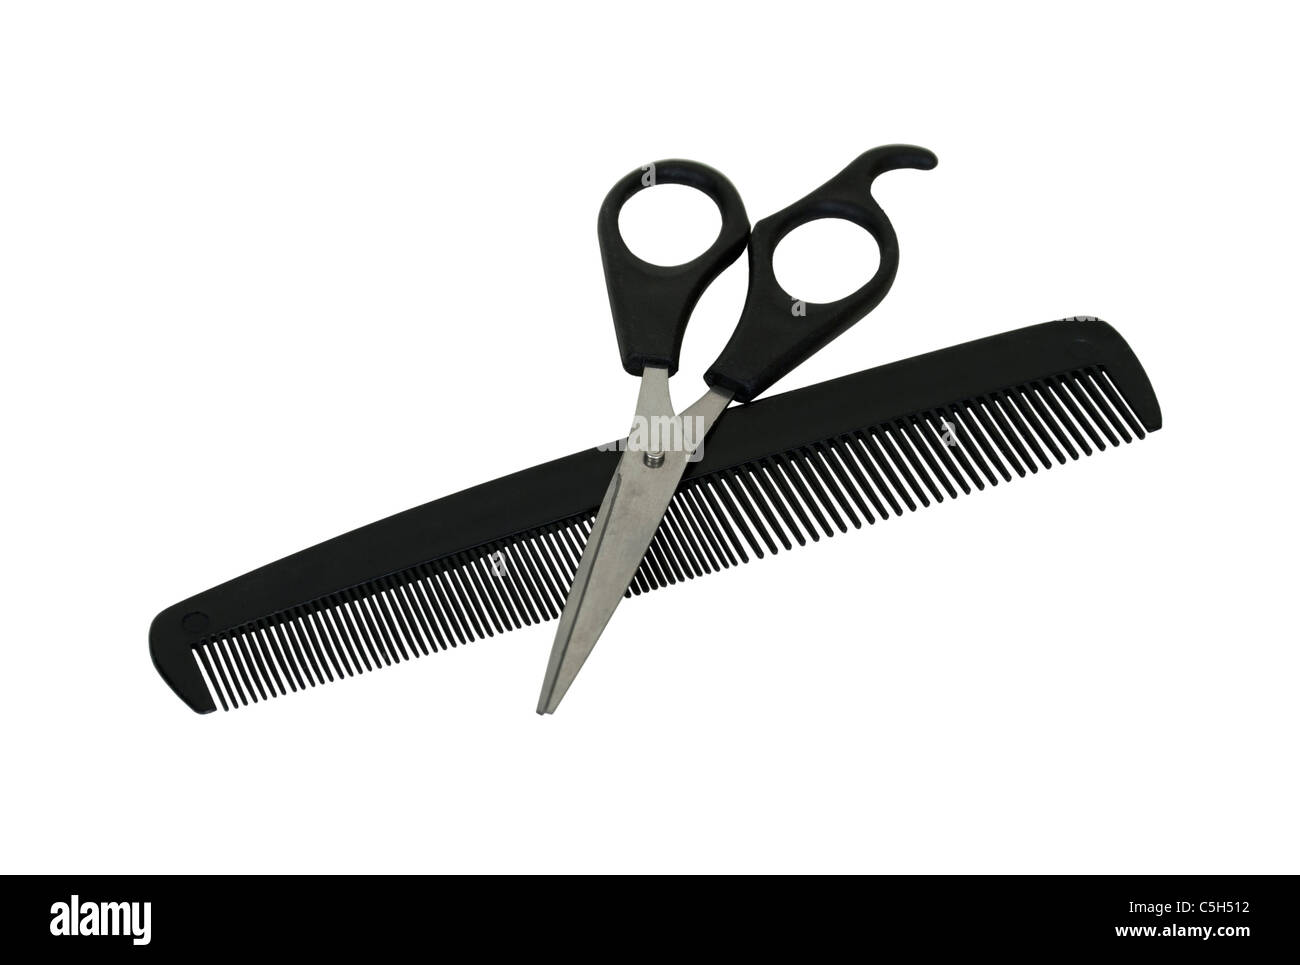 Comb and scissors in preparation to cut hair - path included - Stock Image